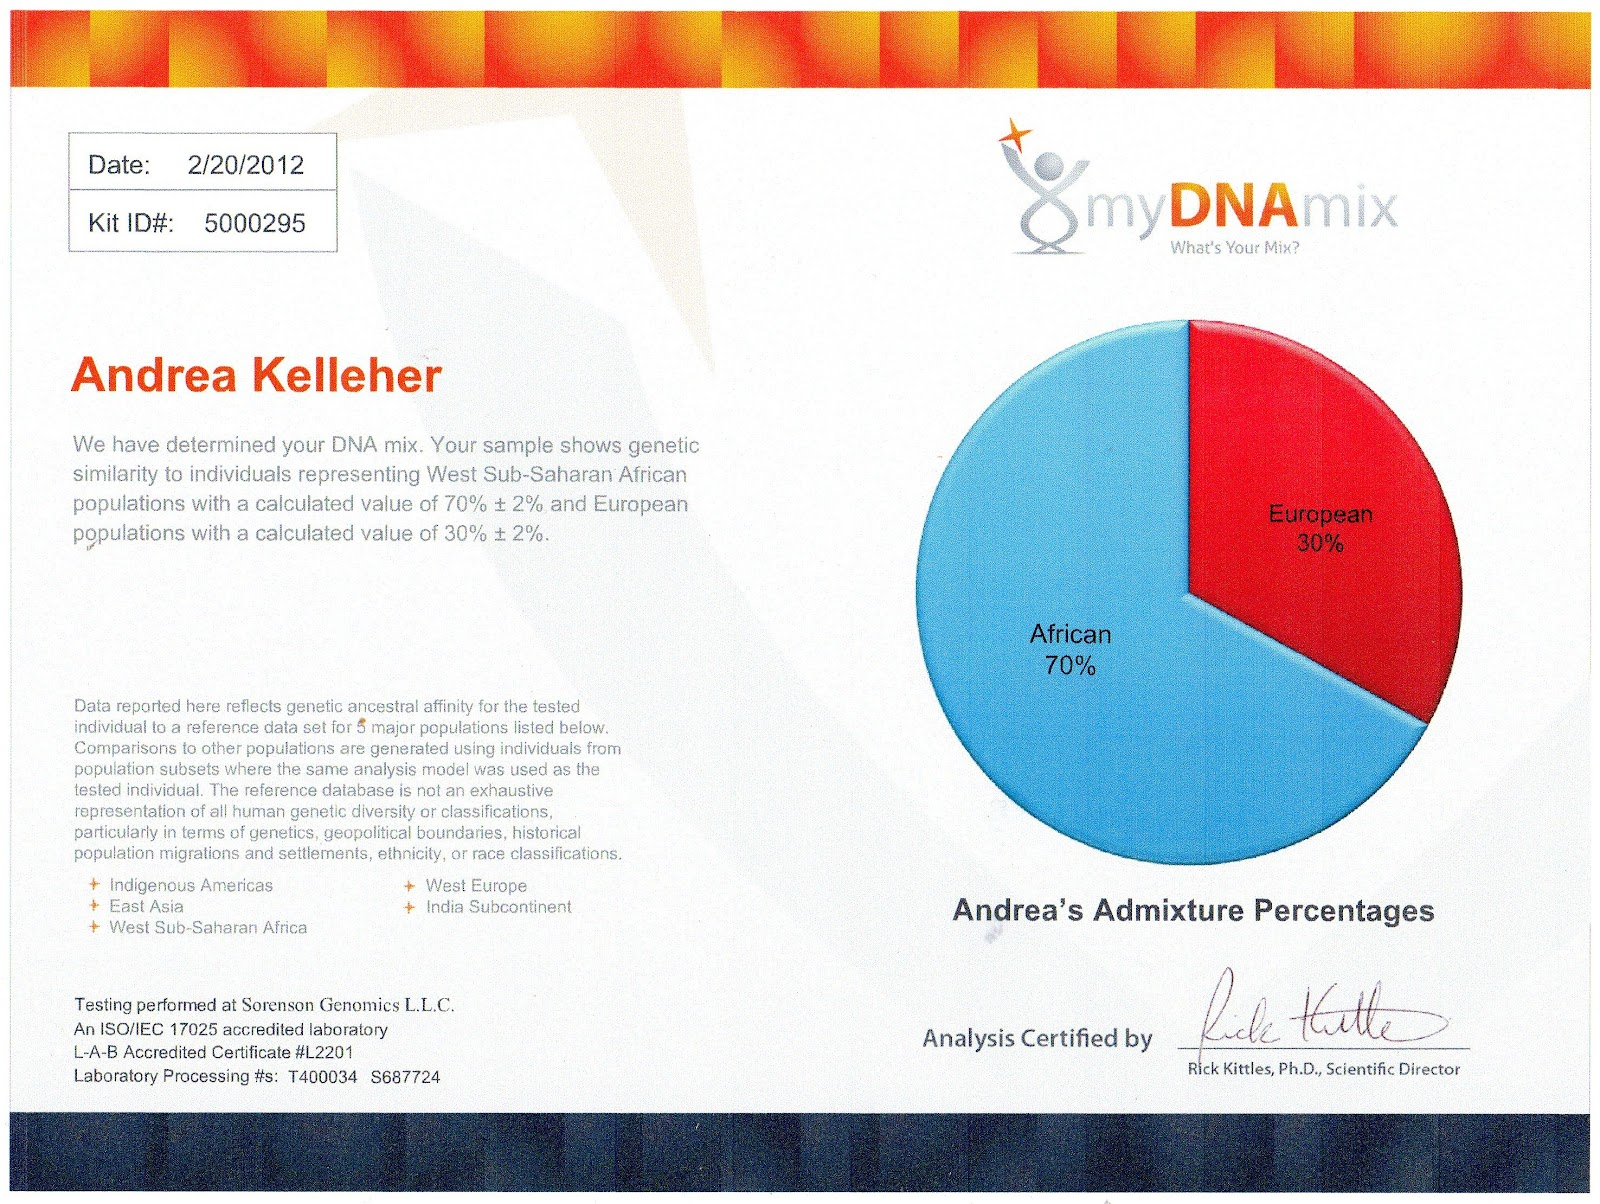 My Dna Admixture Results Are In